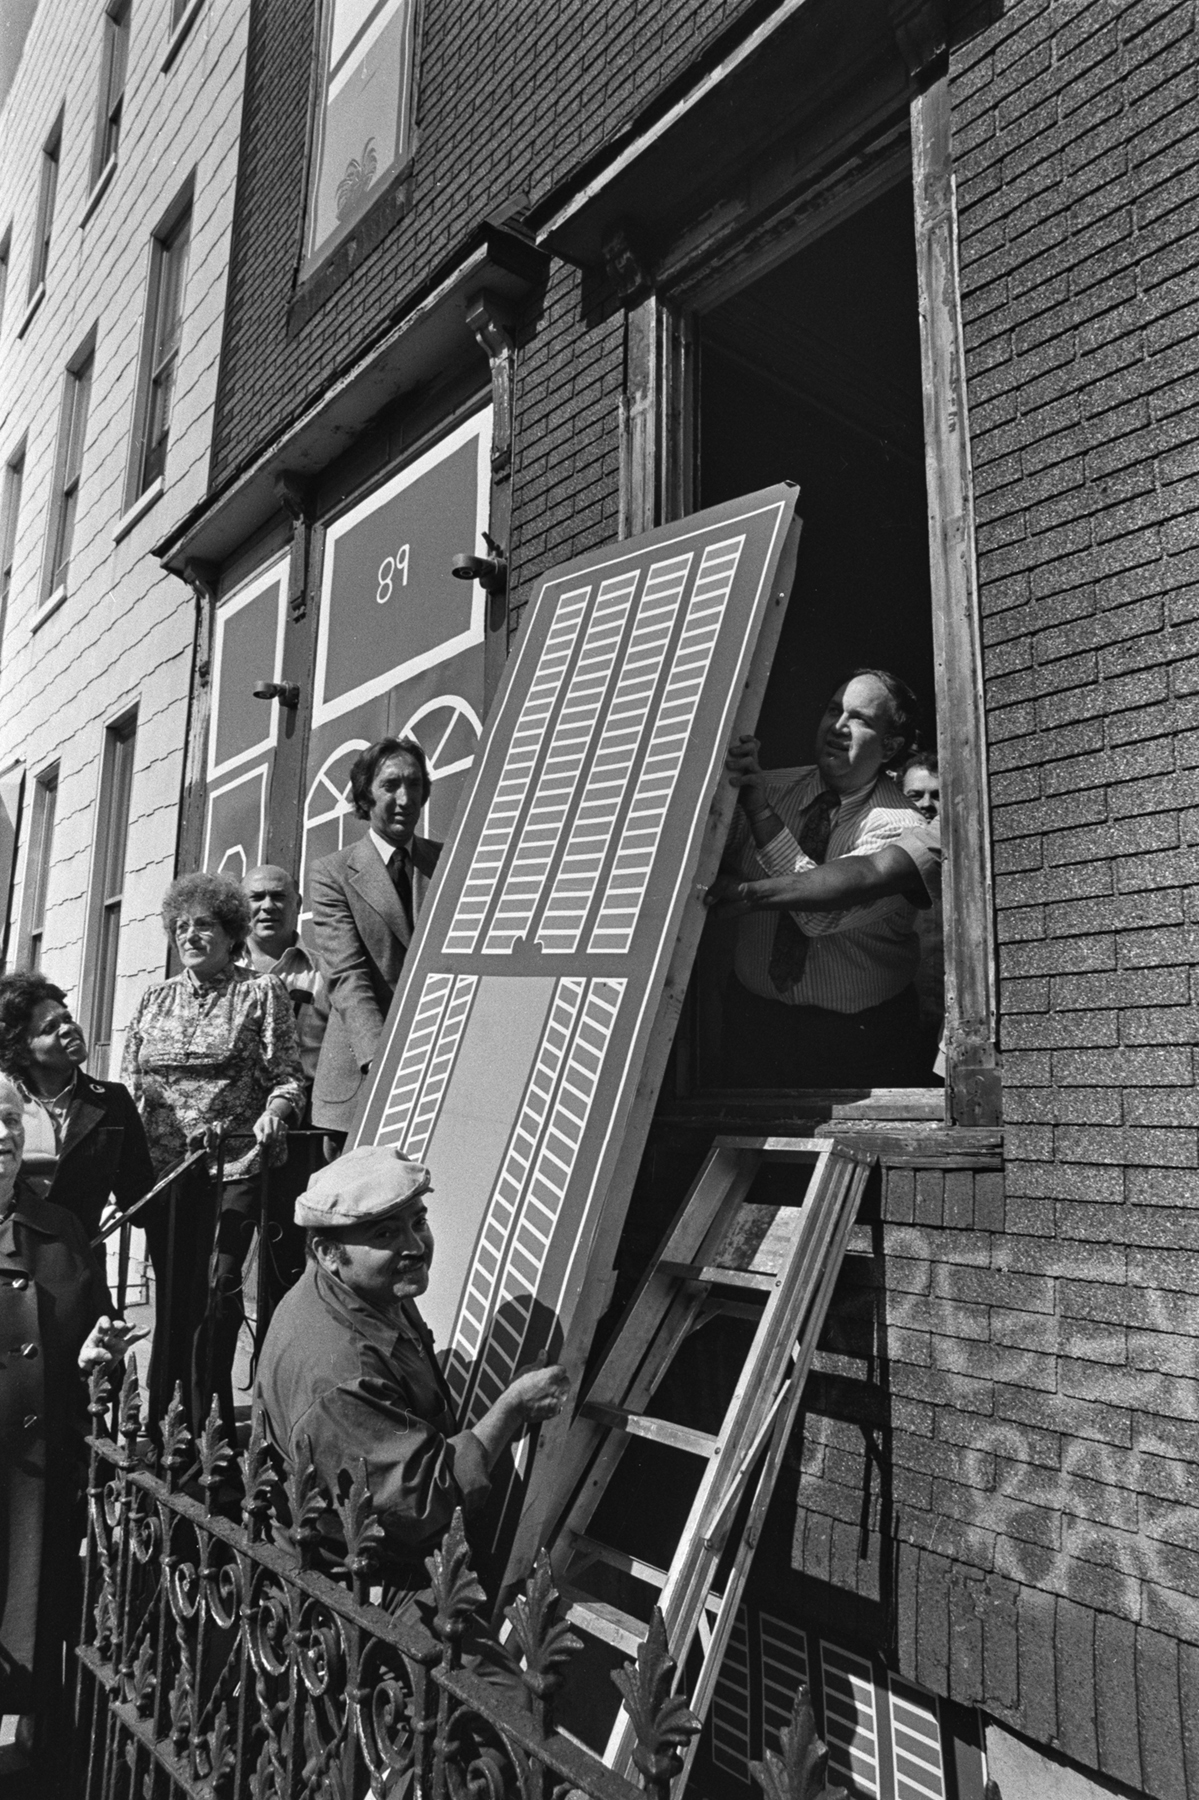 Decorative seal, 89 and 93 Eagle Street, Brooklyn, with Commissioner Gliedman, October 1980. Photographer unknown.